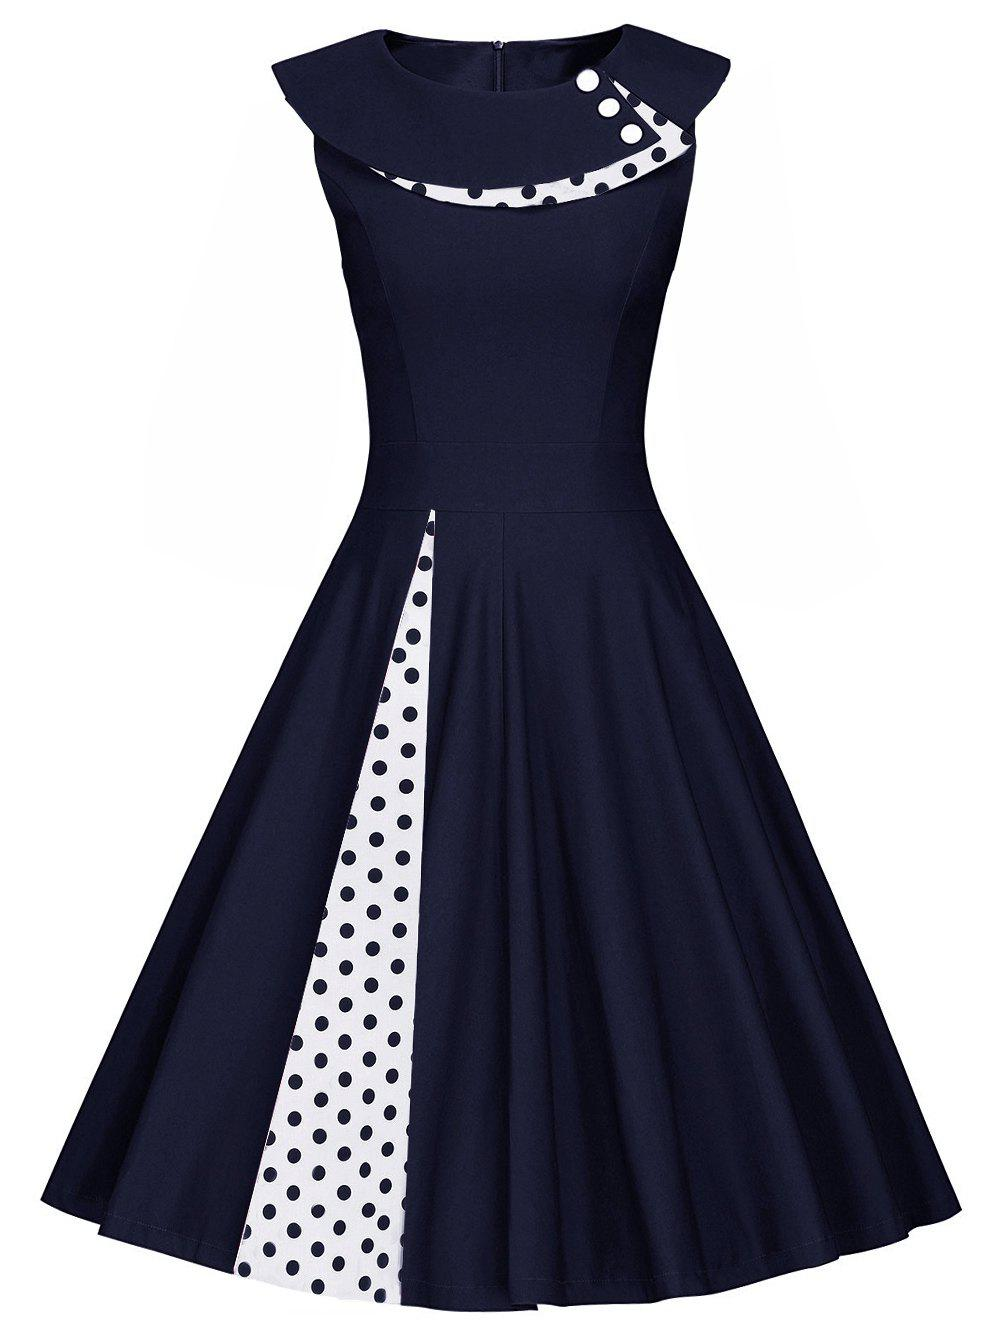 Polka Dot Sleeveless Pleated A Line DressWOMEN<br><br>Size: M; Color: PURPLISH BLUE; Style: Vintage; Material: Polyester; Silhouette: A-Line; Dresses Length: Knee-Length; Neckline: Round Collar; Sleeve Length: Sleeveless; Pattern Type: Polka Dot; With Belt: No; Season: Spring,Summer; Weight: 0.520kg; Package Contents: 1 x Dress;